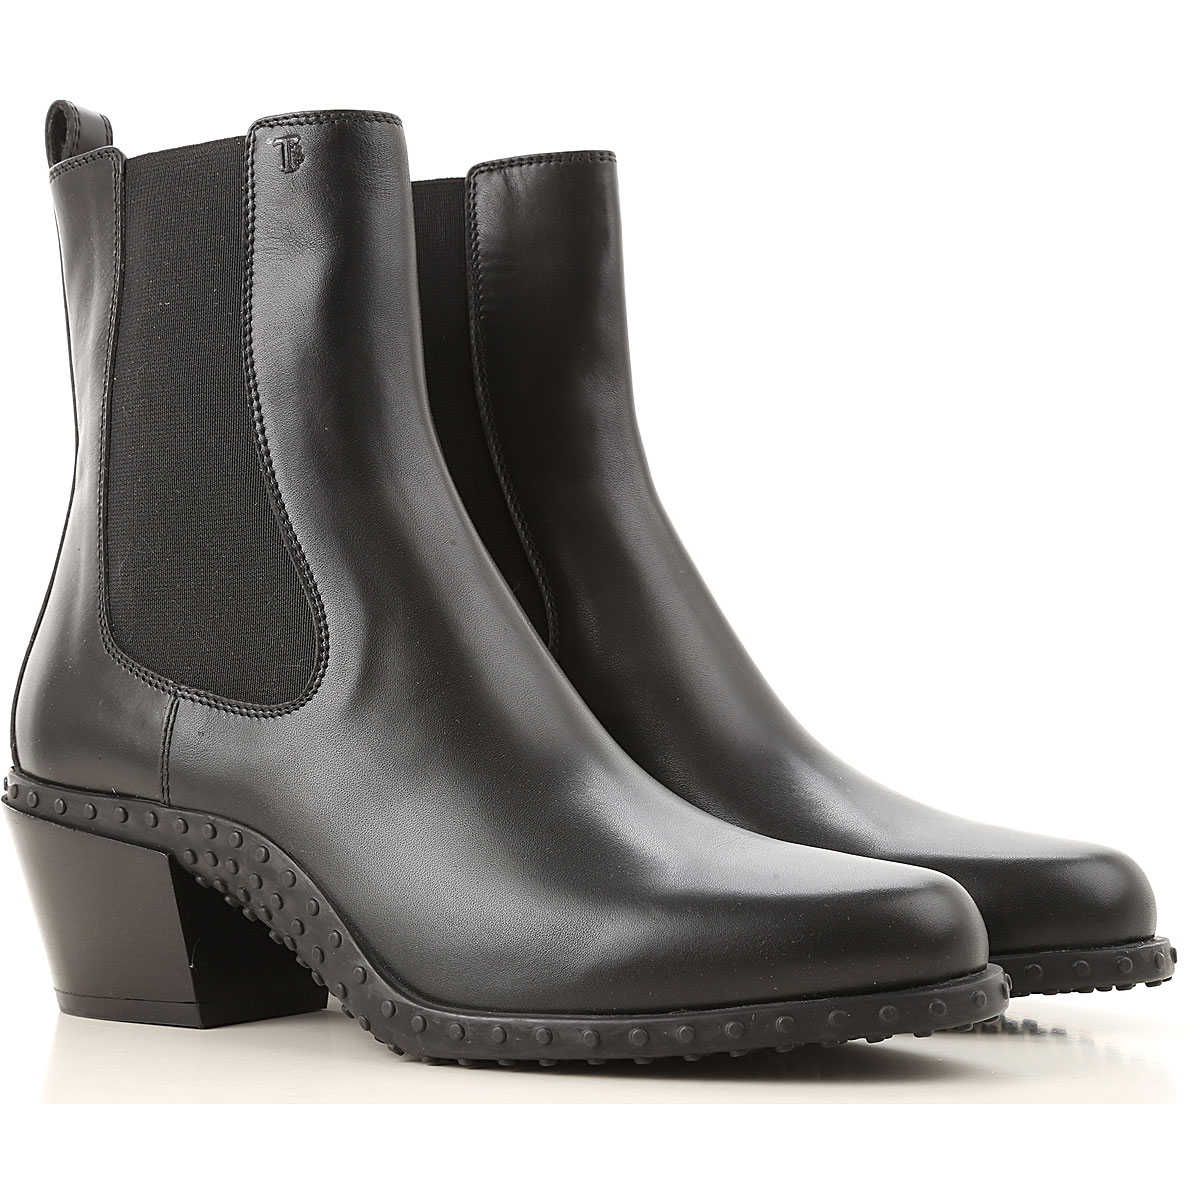 Tods Boots for Women, Booties, Black, Leather, 2019, 10 5 6 6.5 8 8.5 9 9.5